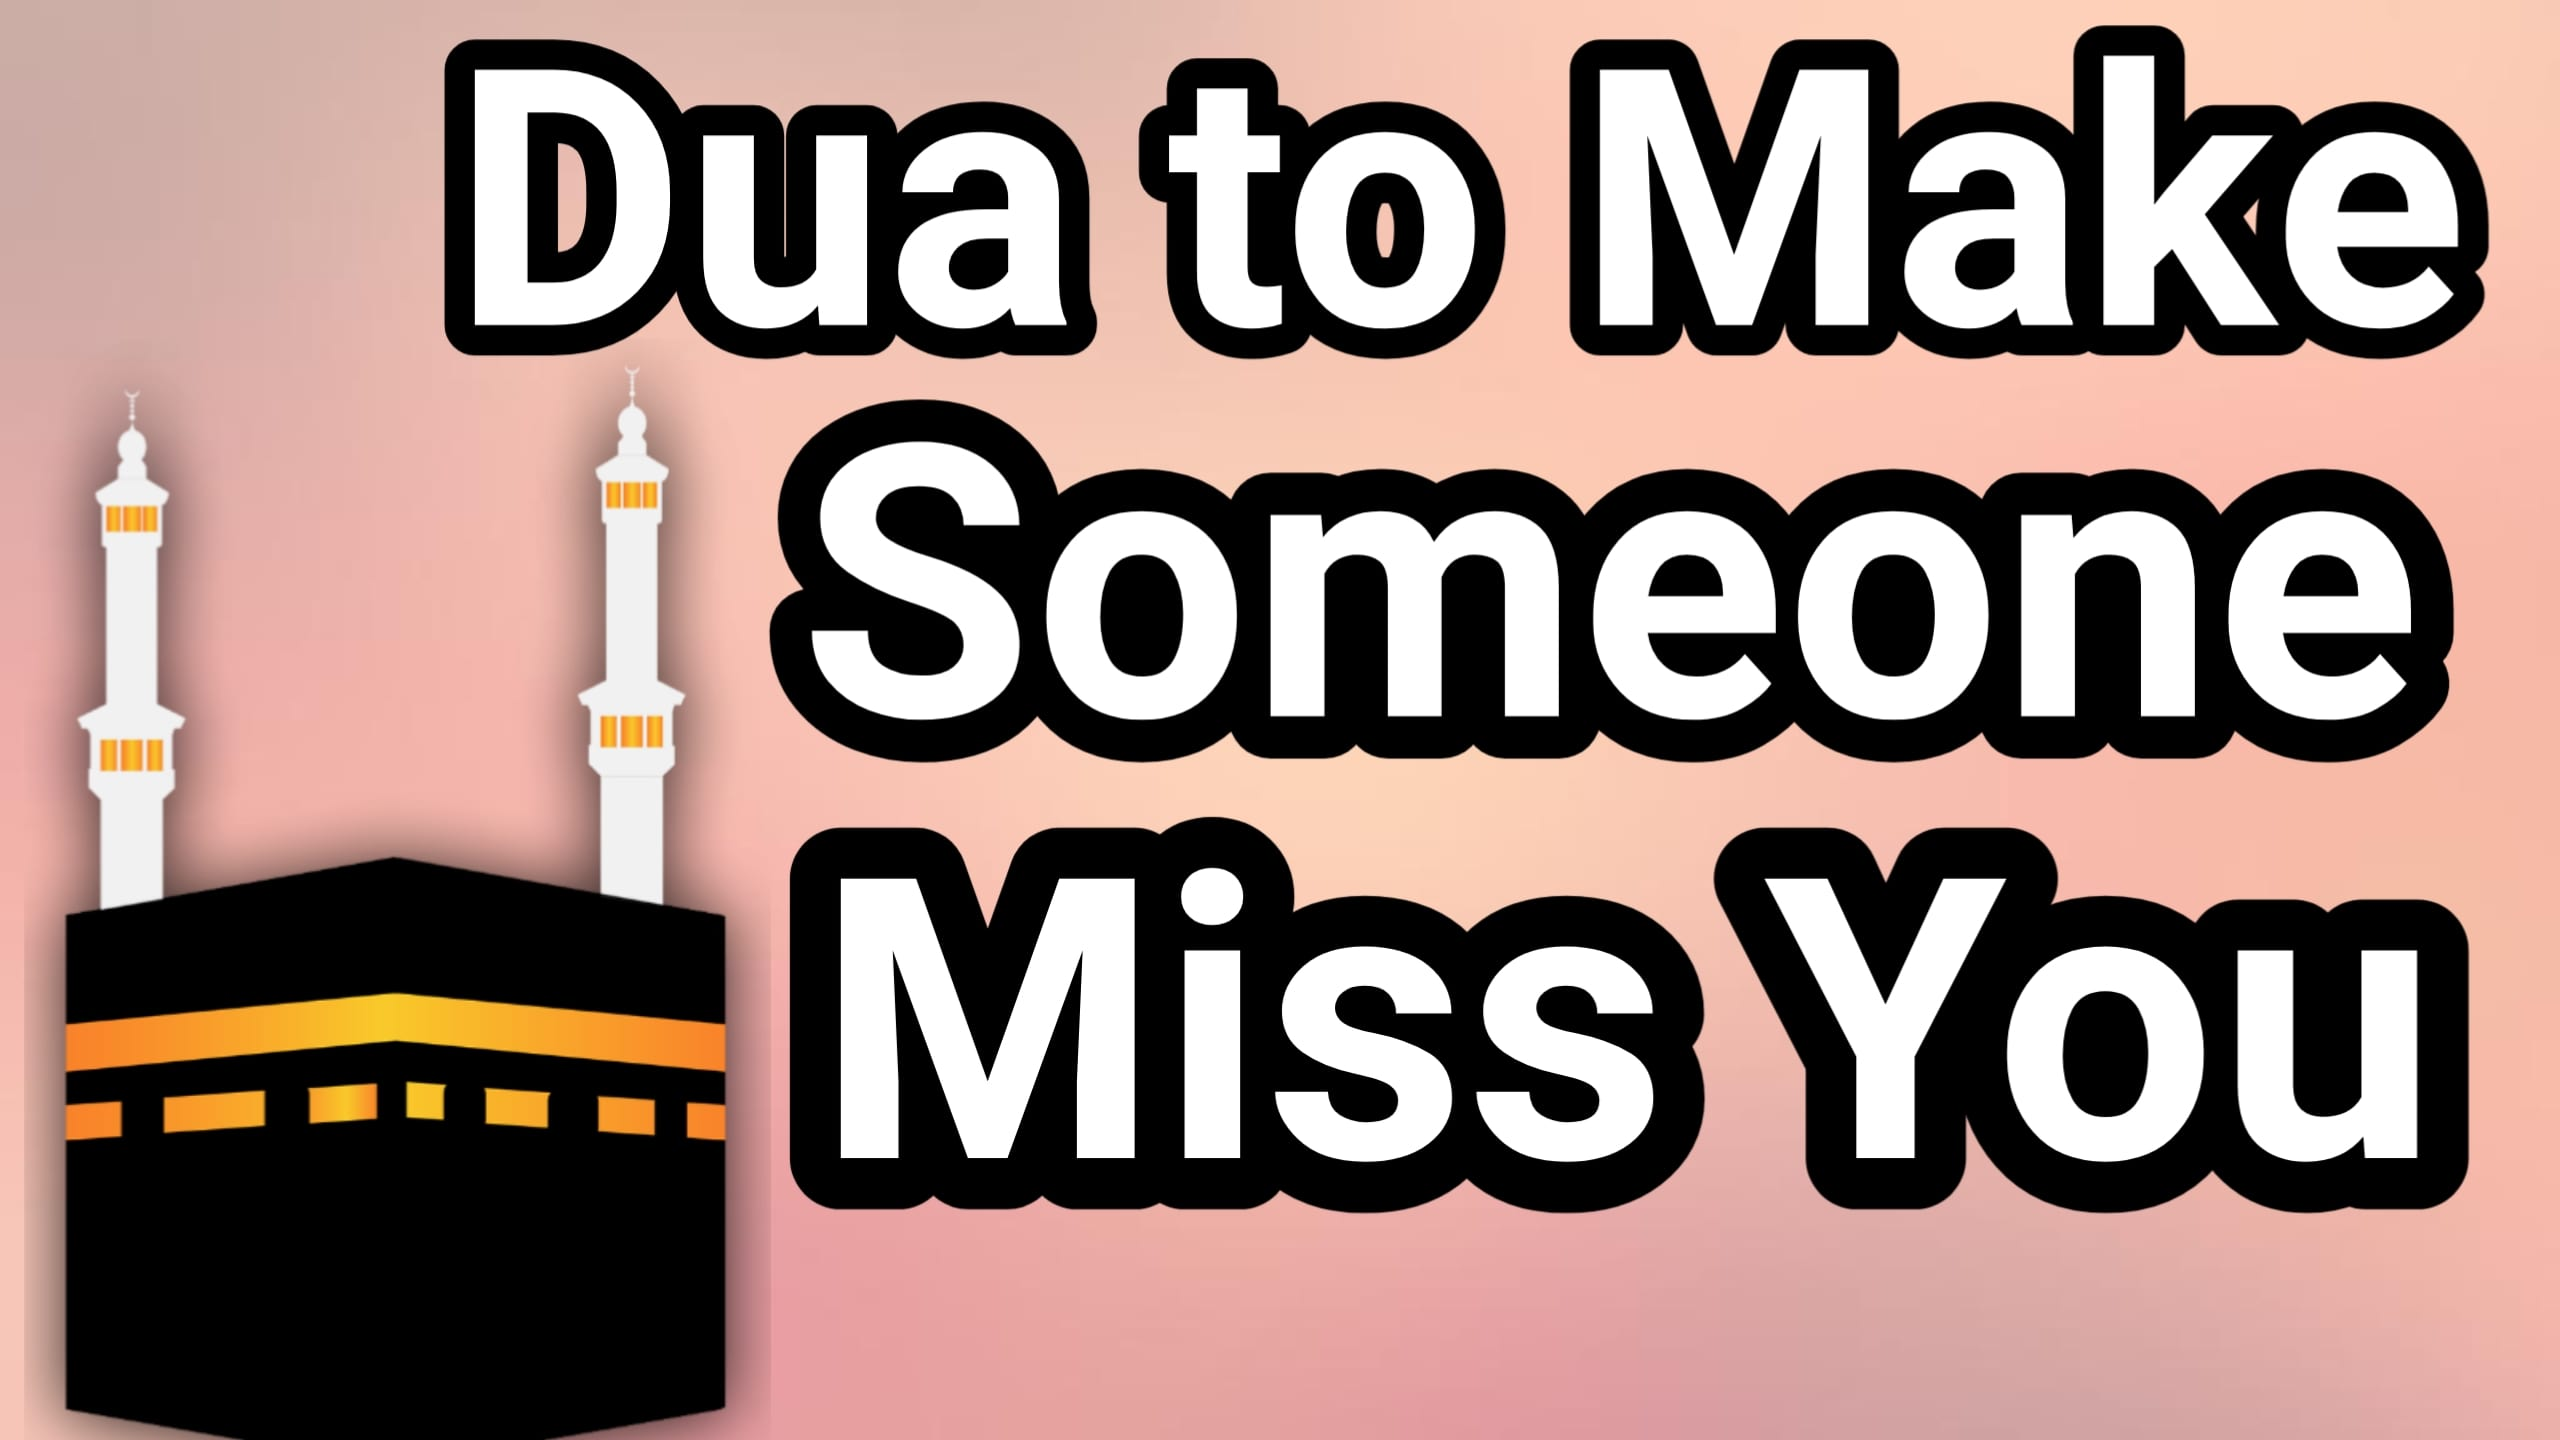 Dua to make someone miss you from quran